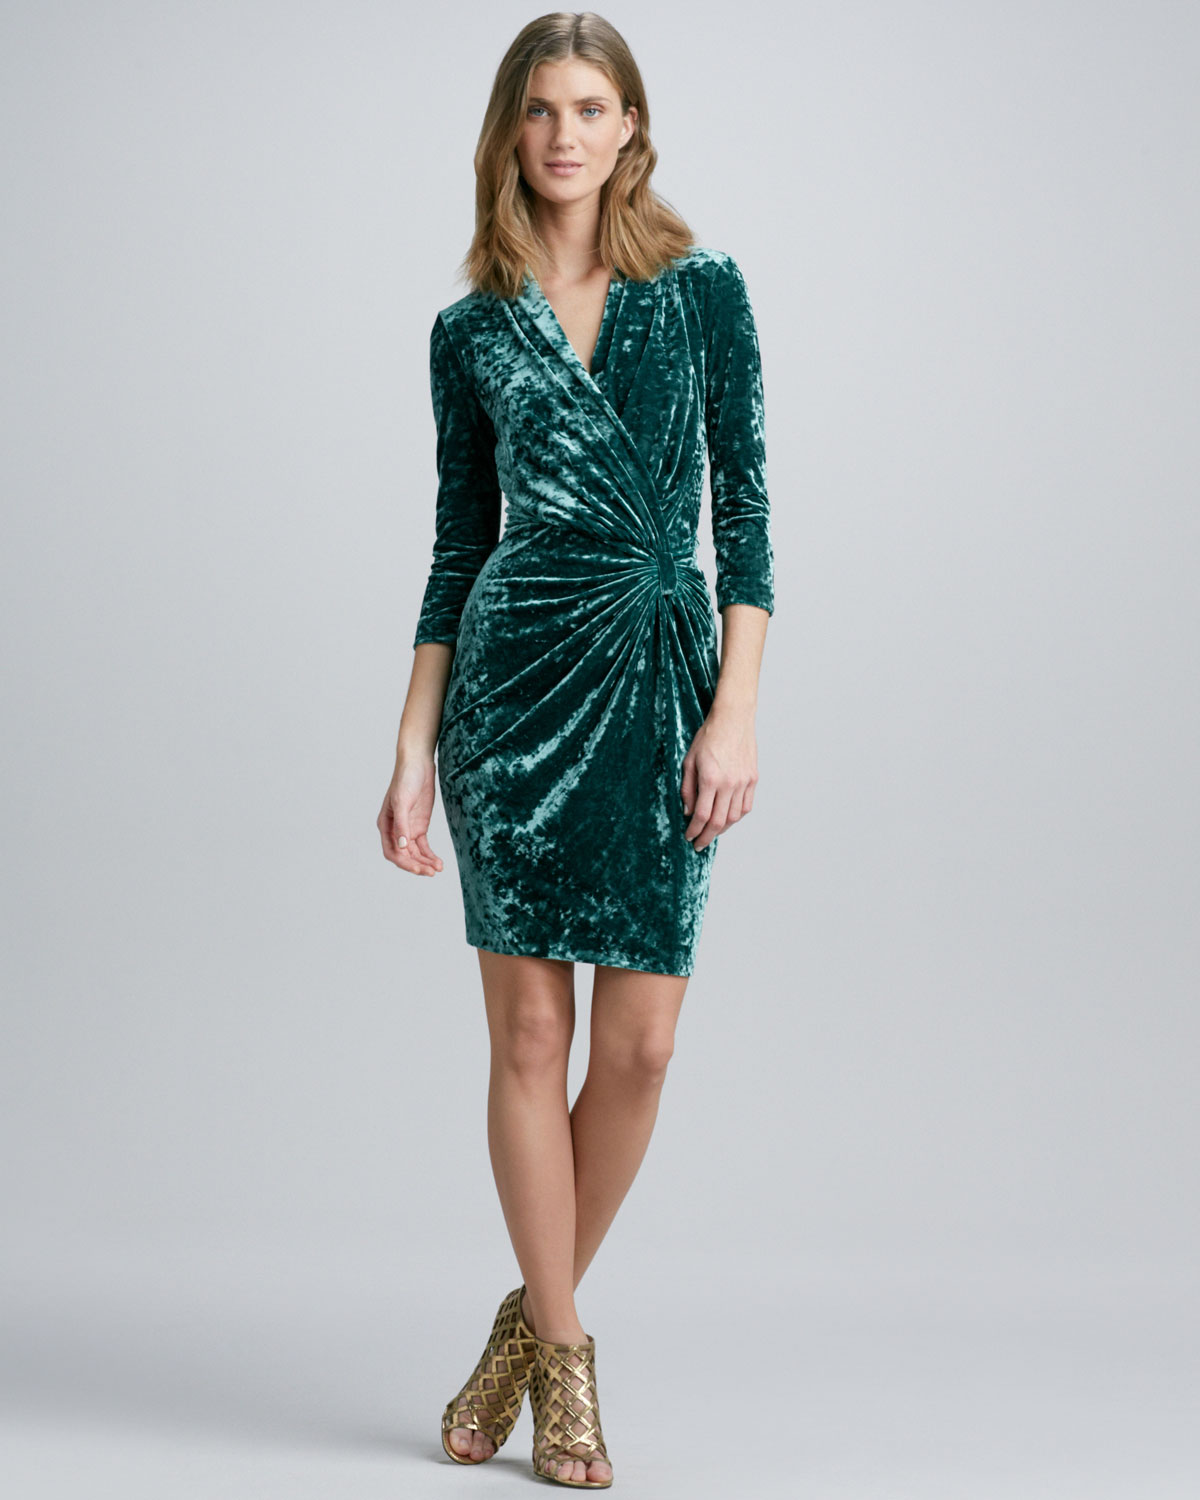 Catherine Malandrino Fauxwrap Crushed Velvet Dress In